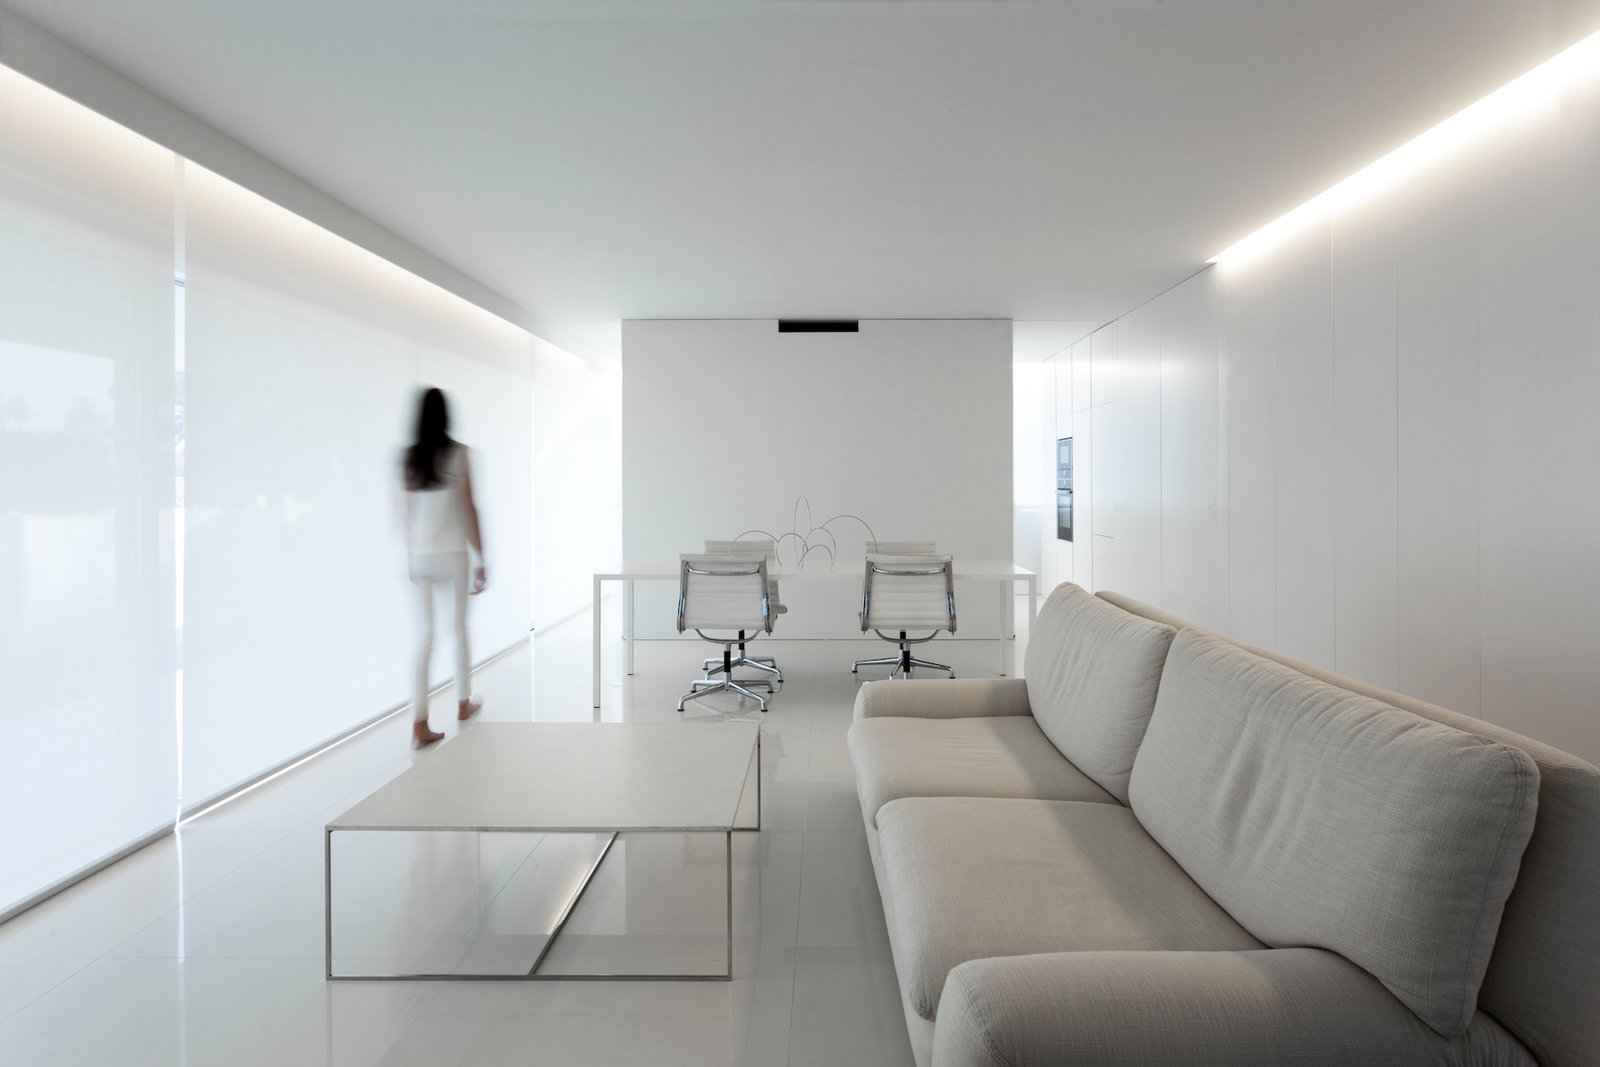 Tagged: Living Room, Sofa, Accent Lighting, and Porcelain Tile Floor.  Breeze House by Leibal